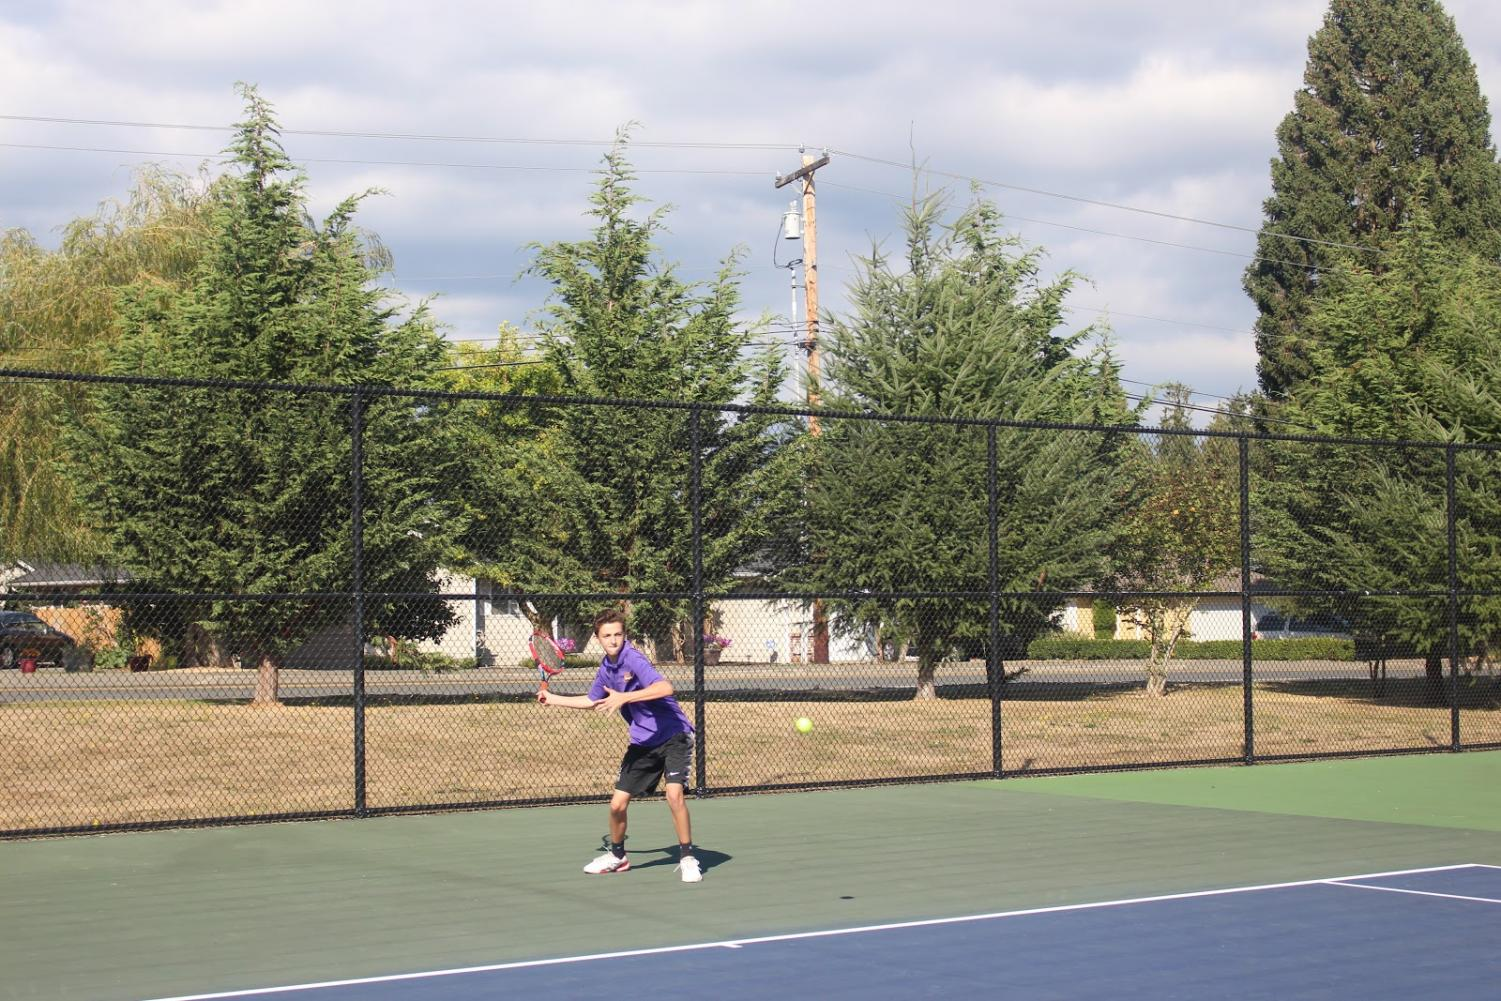 COMING AT YOU: One of our great tennis players, practicing for districts, He was with his team, who were also preparing for Districts.